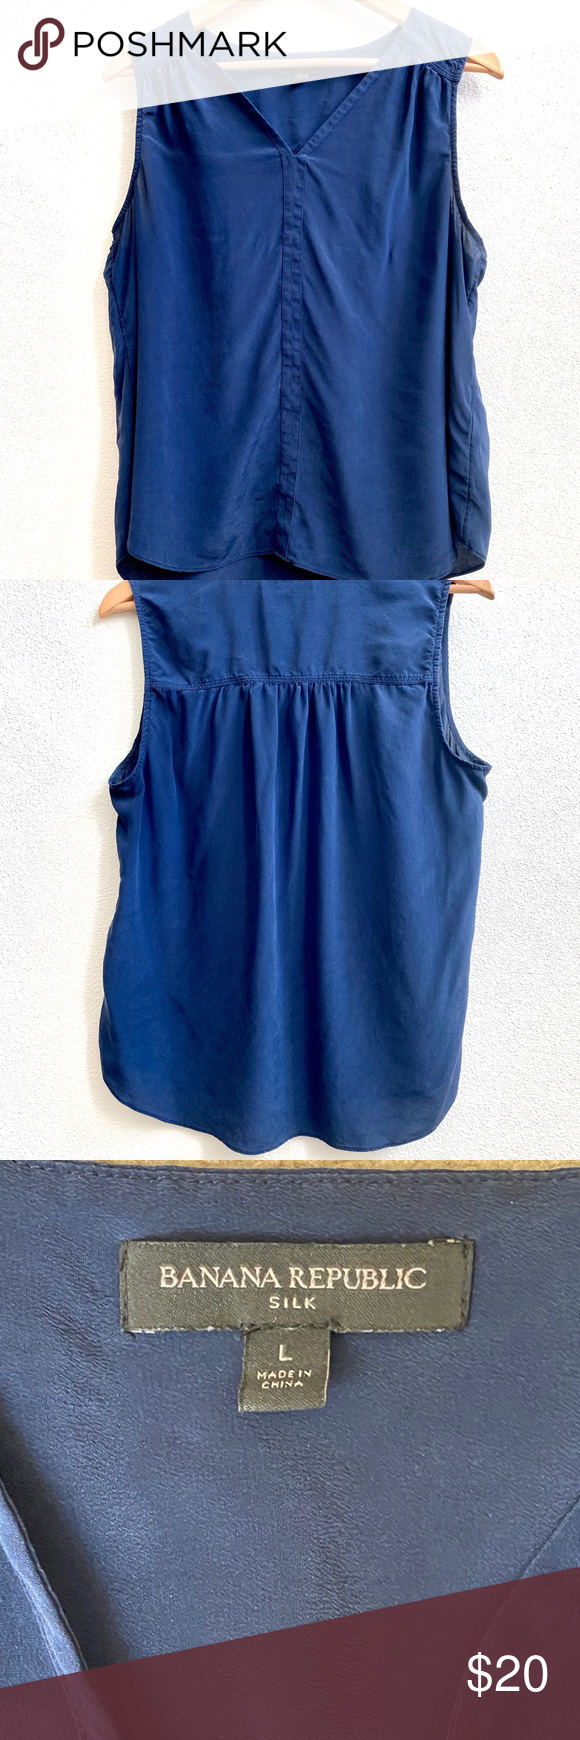 Banana Republic navy blue sleeveless blouse shirt Gently worn Banana Republic sl...